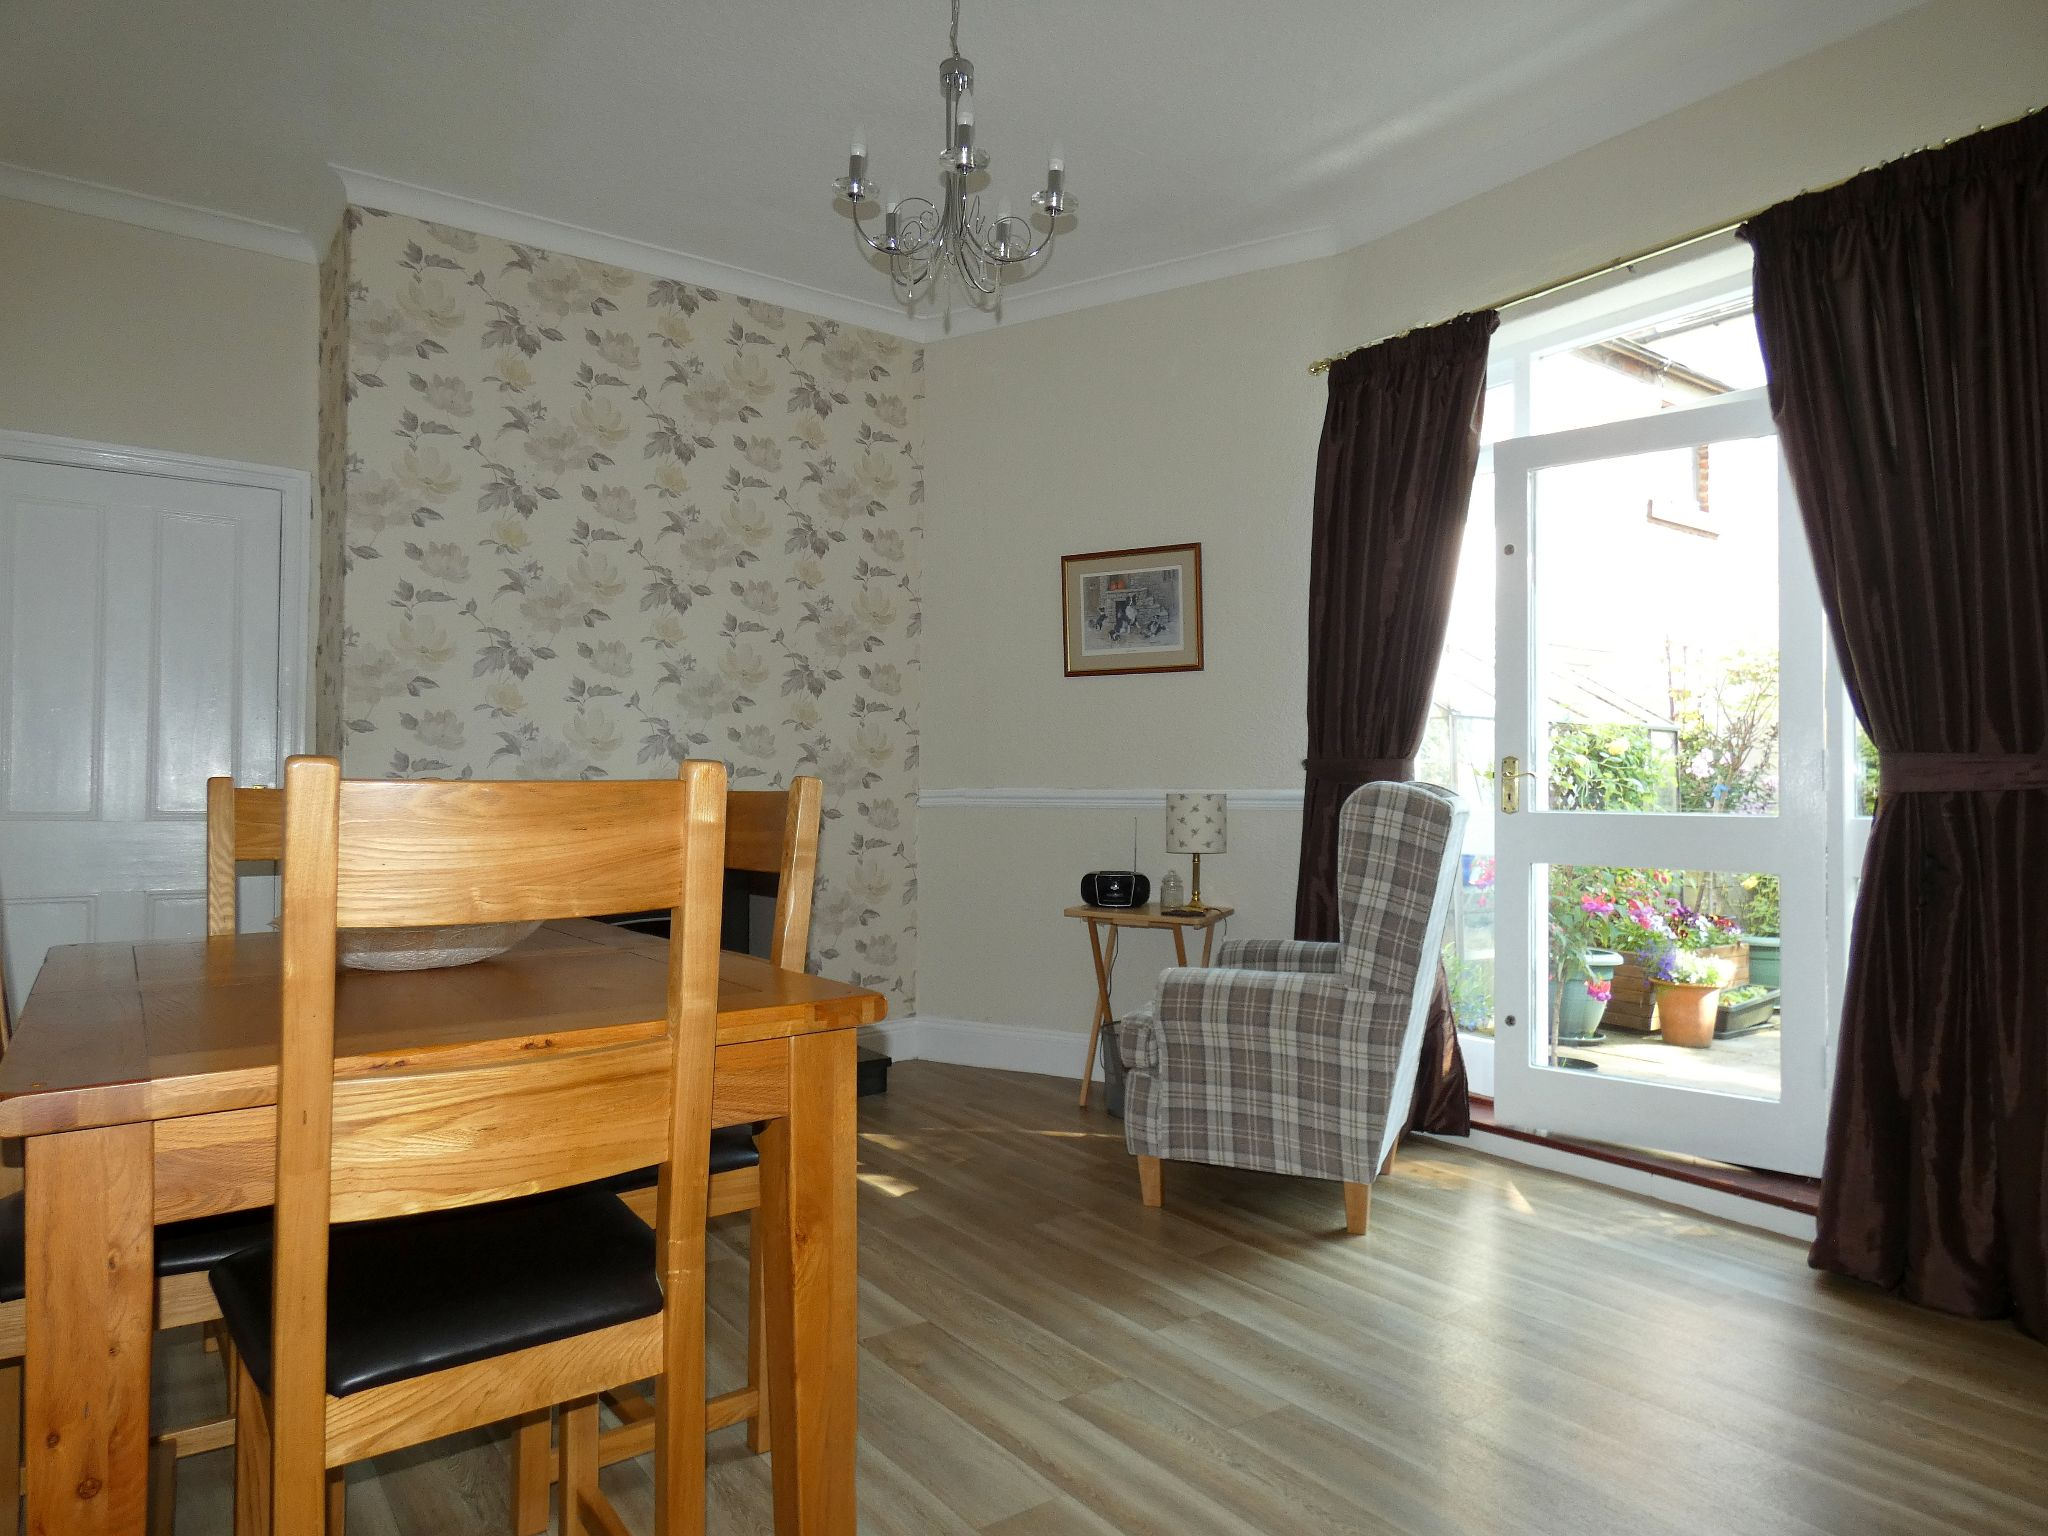 5 bedroom semi-detached house For Sale in Bishop Auckland - Second Reception Room.